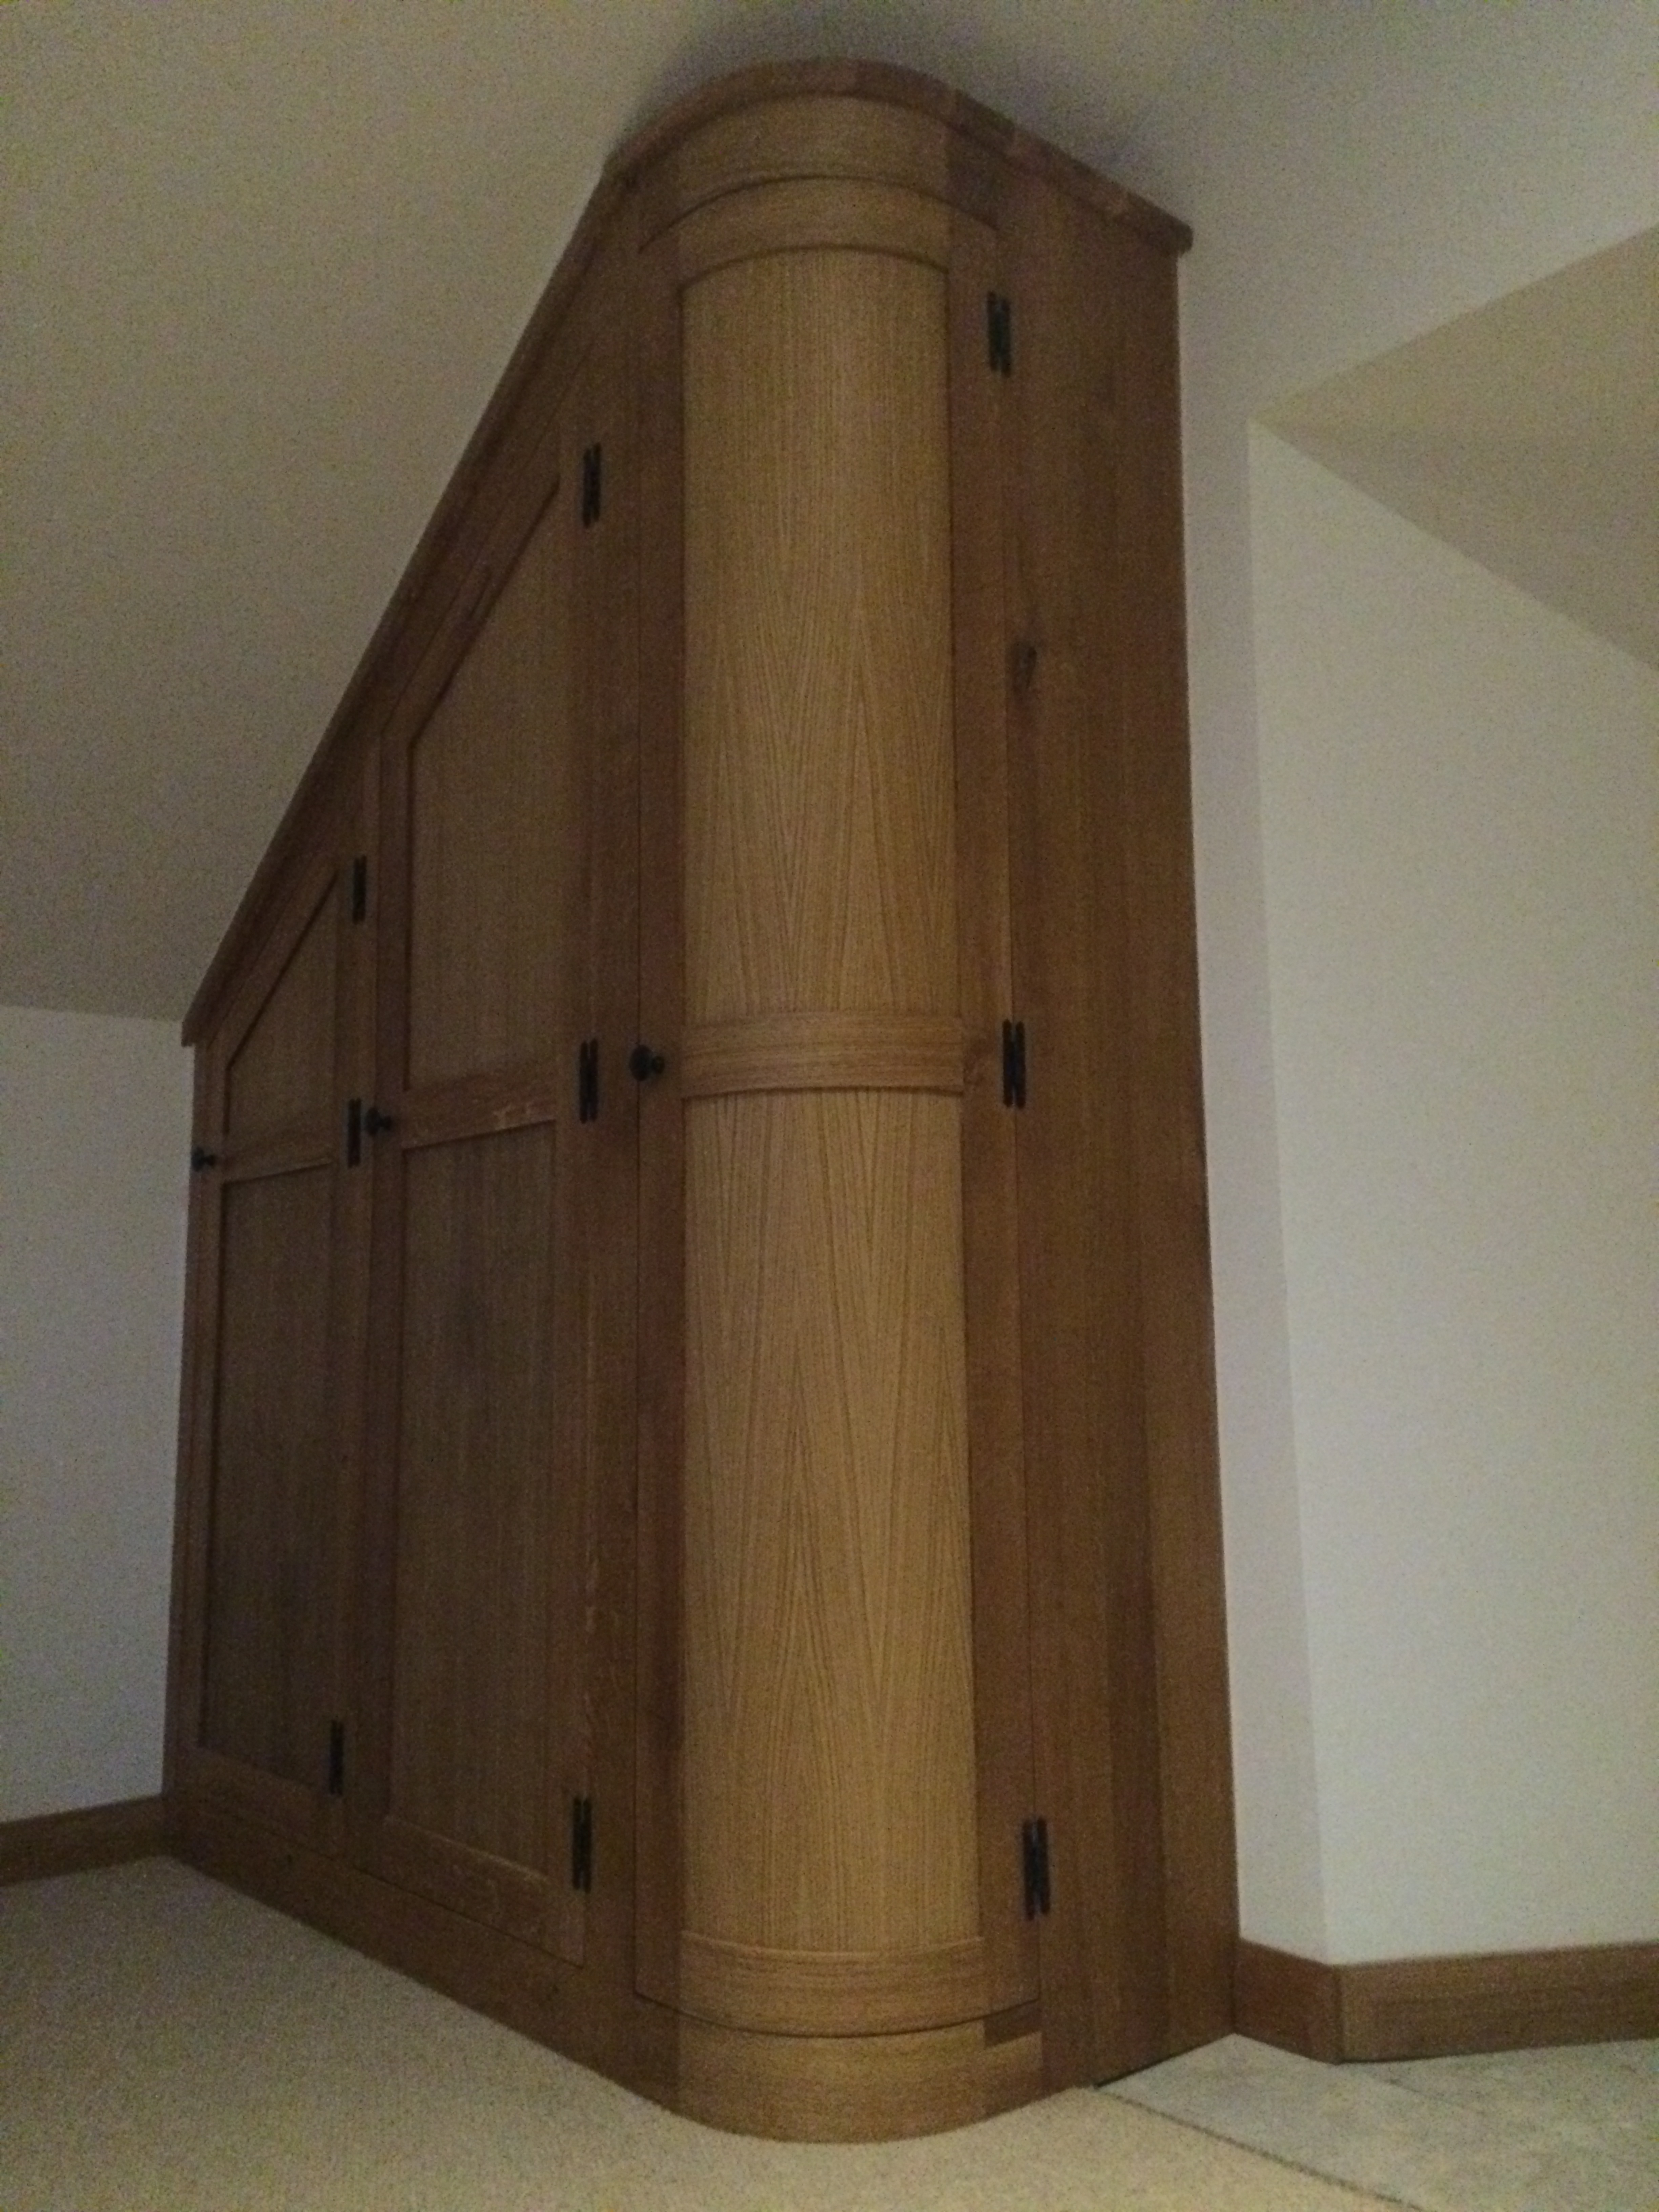 Curved Wardrobe Doors Create Real Interest In This Fitted Dressing Inside Curved Wardrobe Doors (View 10 of 15)